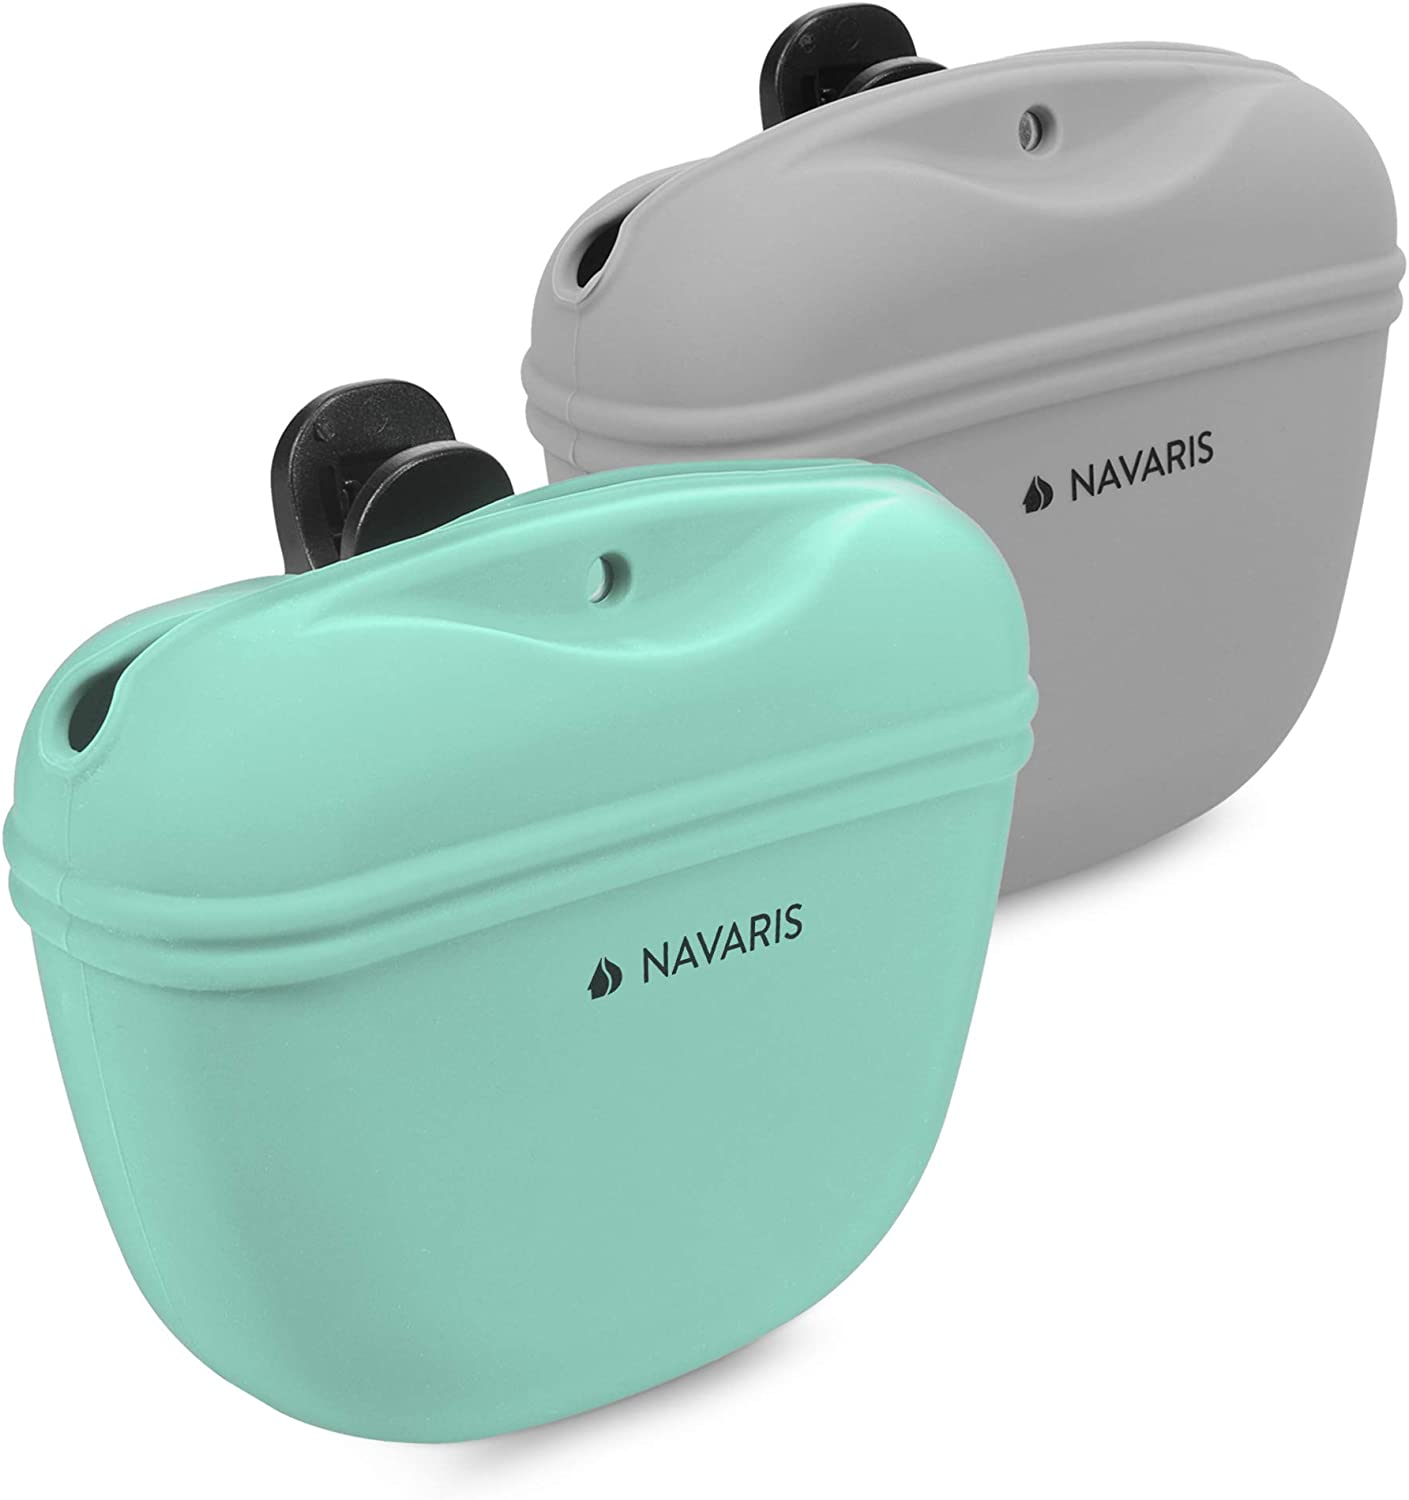 Navaris Silicone Dog Treat Pouch - Training Pet Puppy Bag Pocket Snack Treat Food Holder with Clip for Belt for Dog Walks - Set of 2